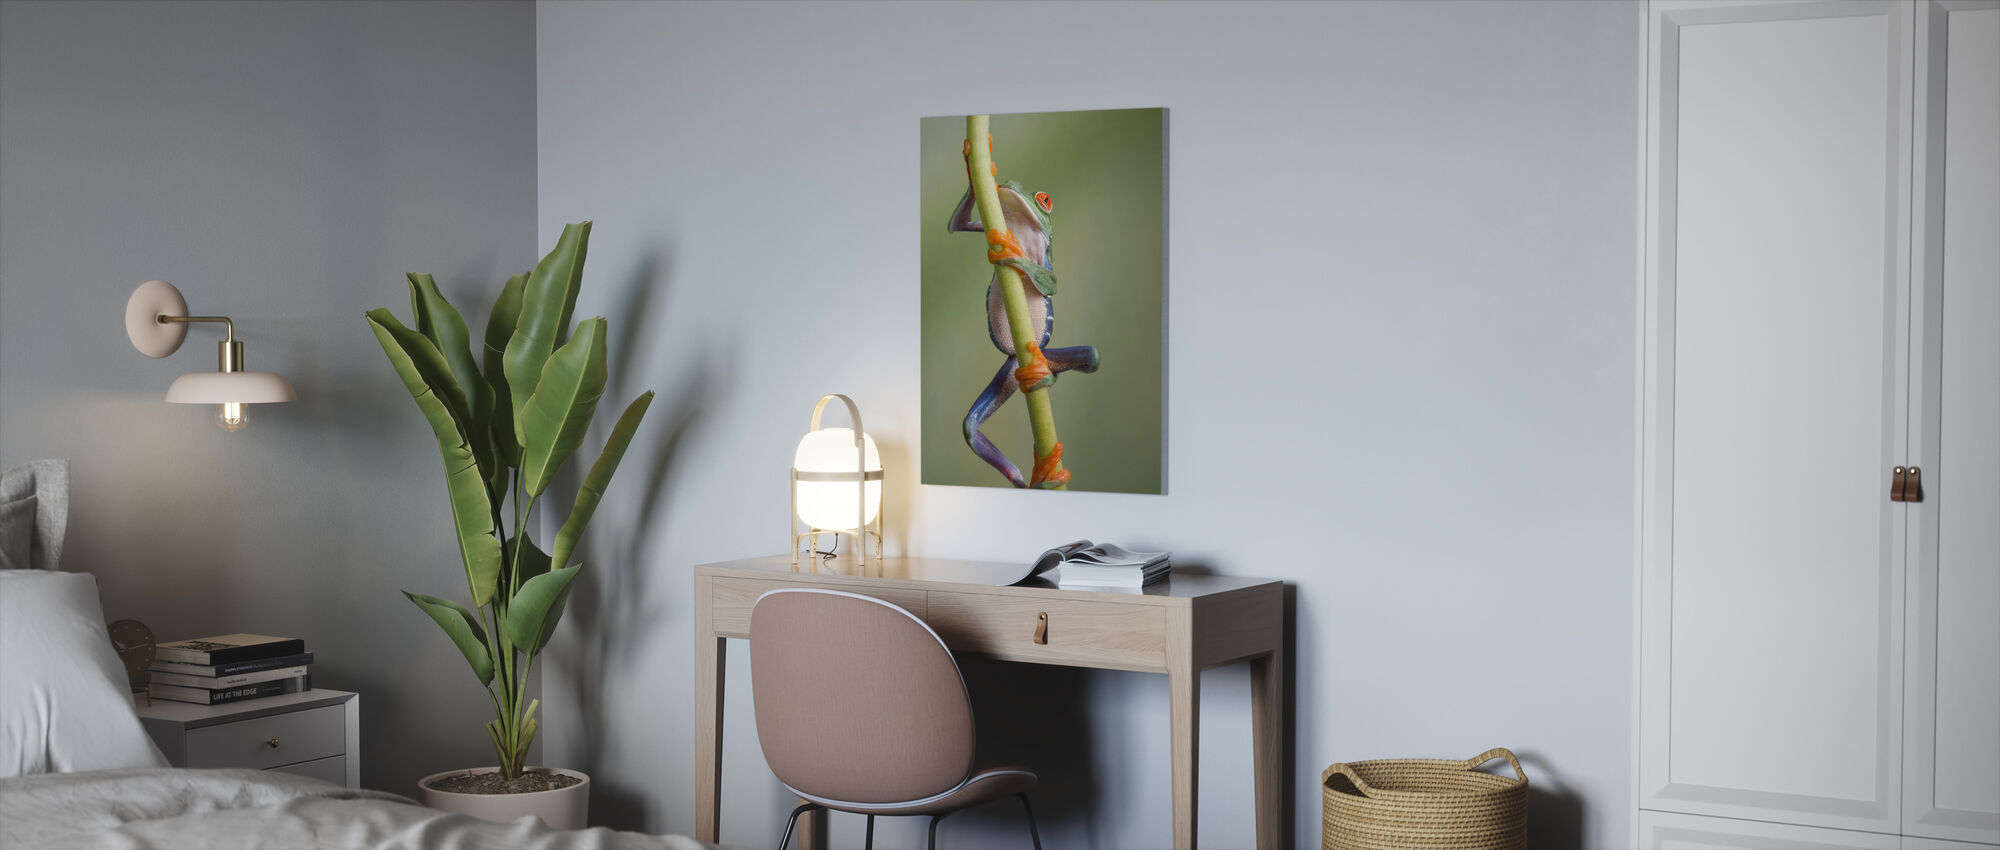 Ascending - Canvas print - Office